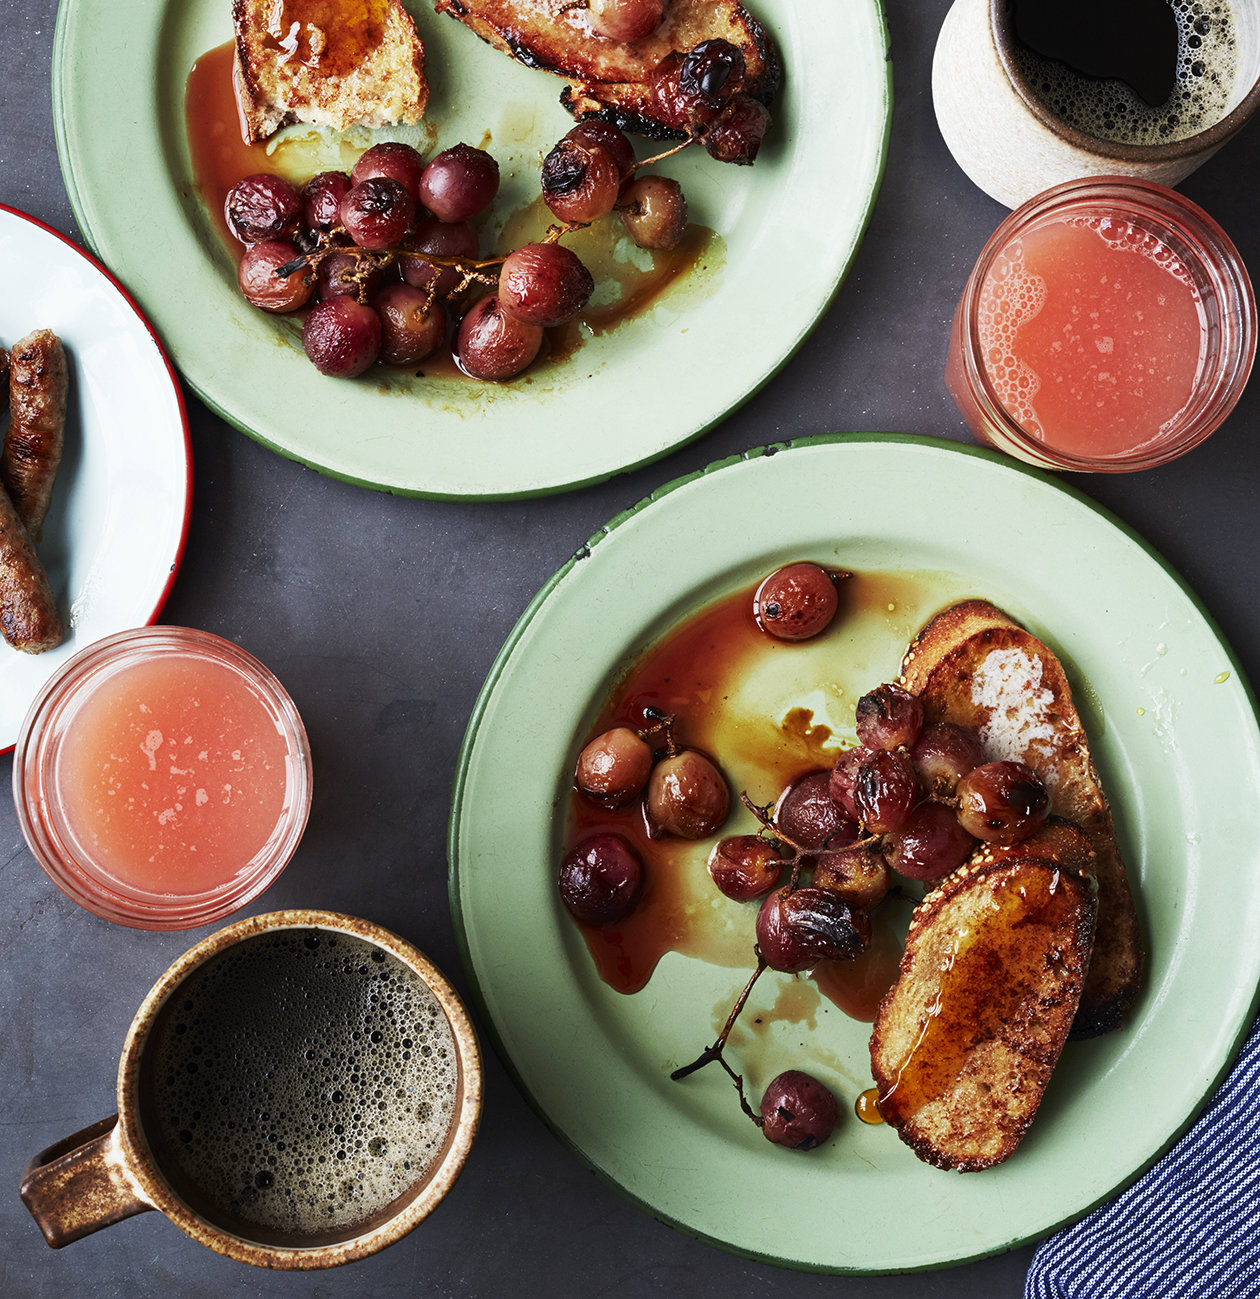 Whole-Grain Cinnamon French Toast With Broiled Grapes